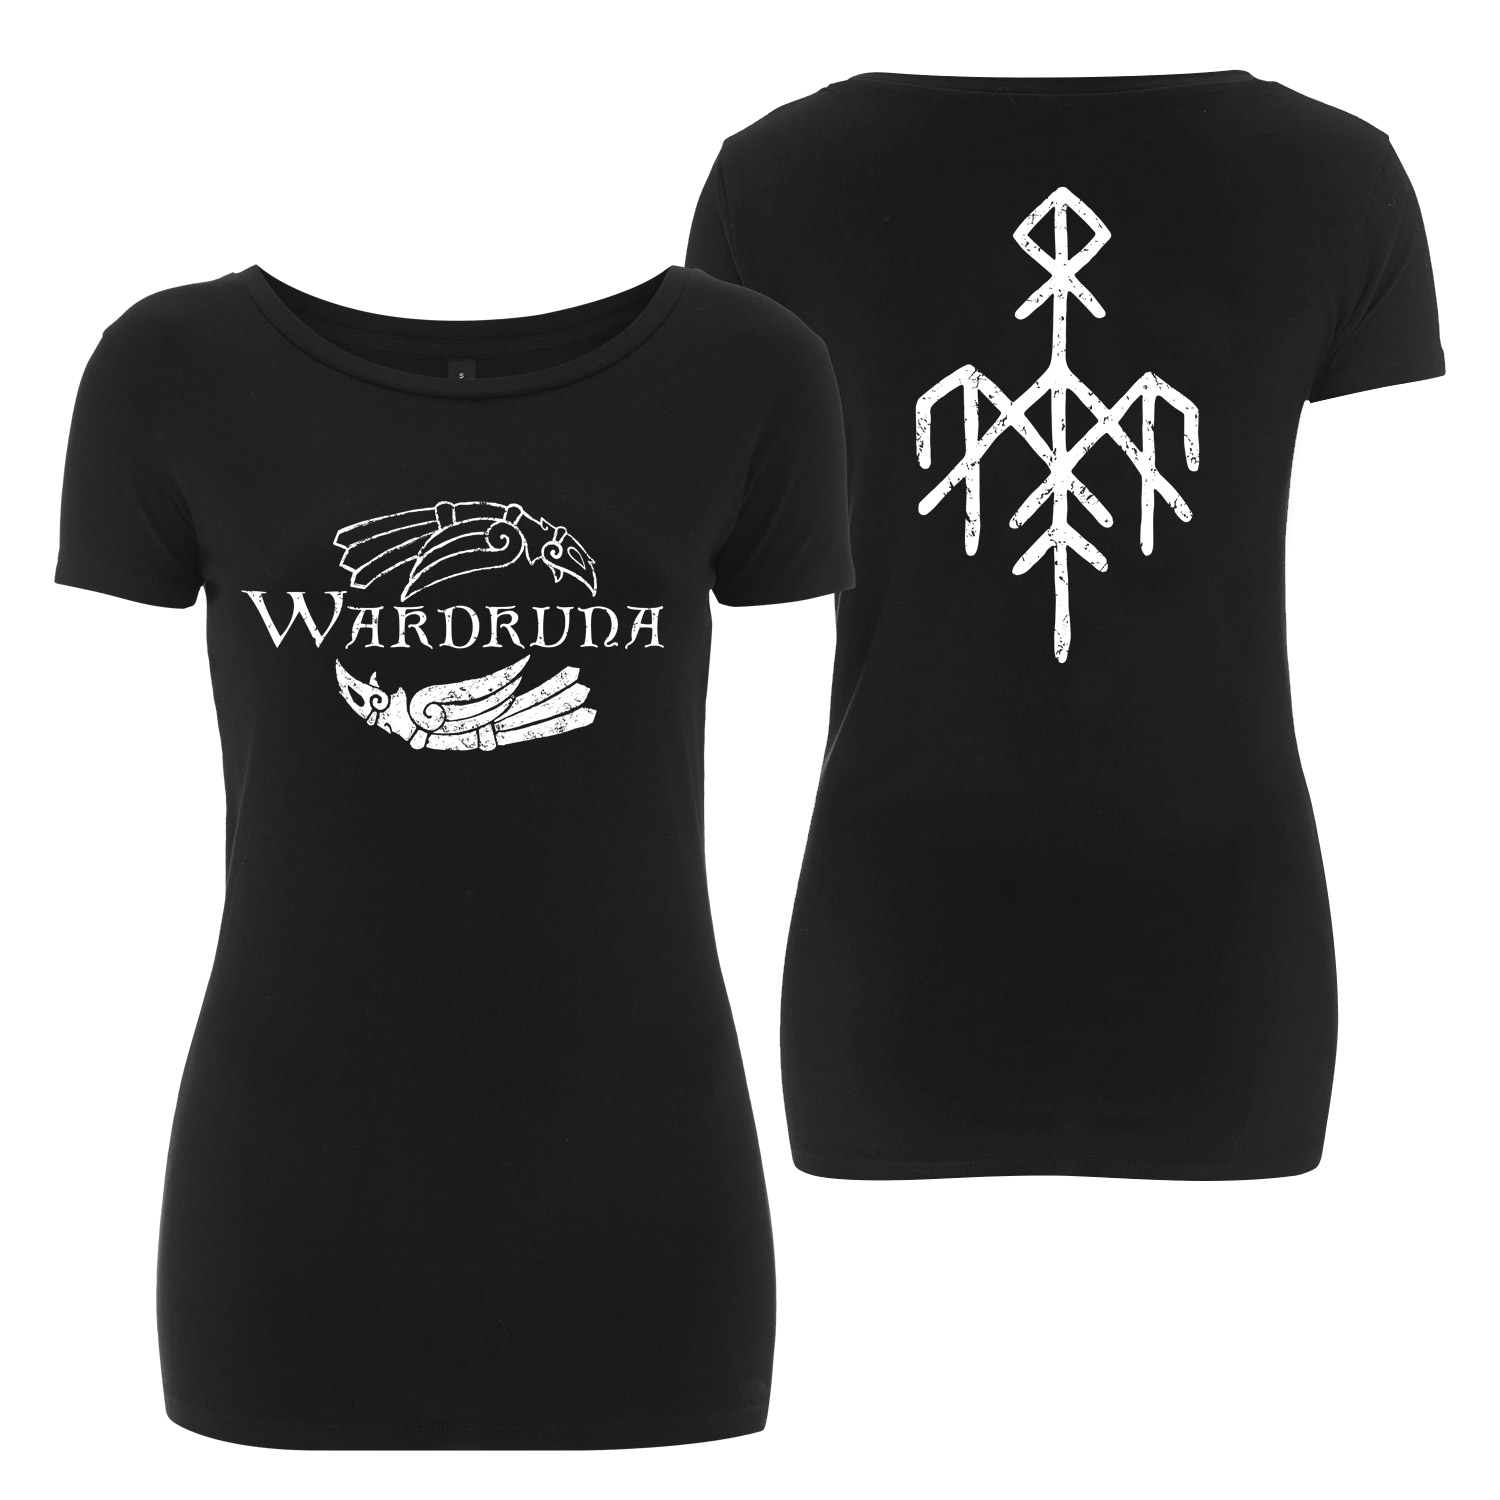 Kvitravn Horizontal T-Shirt, Flag and Keychain Bundle (Women)